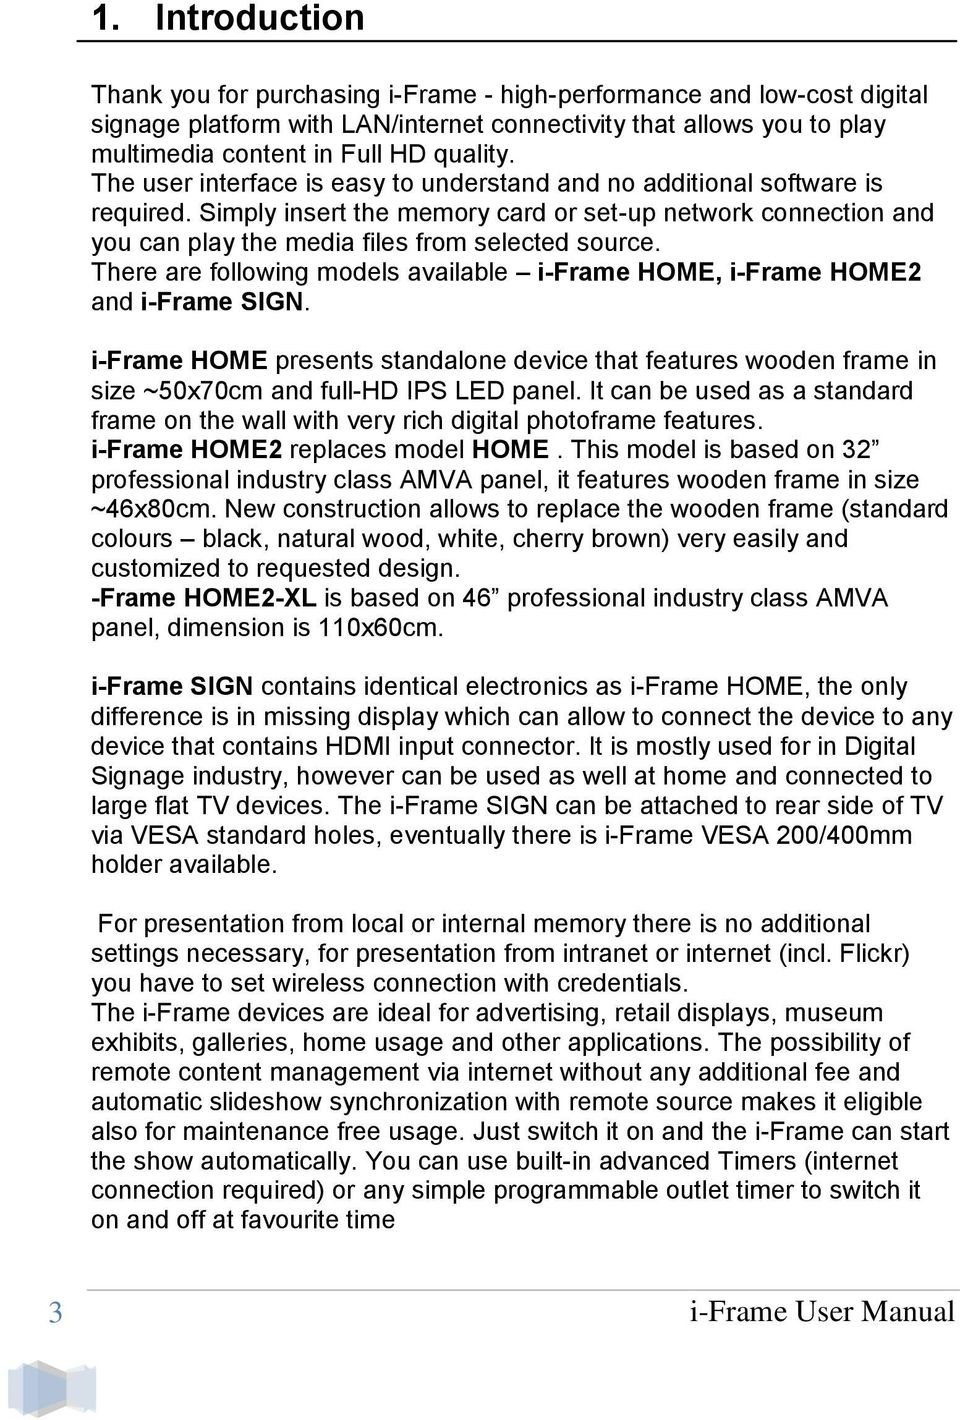 There are following models available i-frame HOME, i-frame HOME2 and i-frame SIGN. i-frame HOME presents standalone device that features wooden frame in size ~50x70cm and full-hd IPS LED panel.